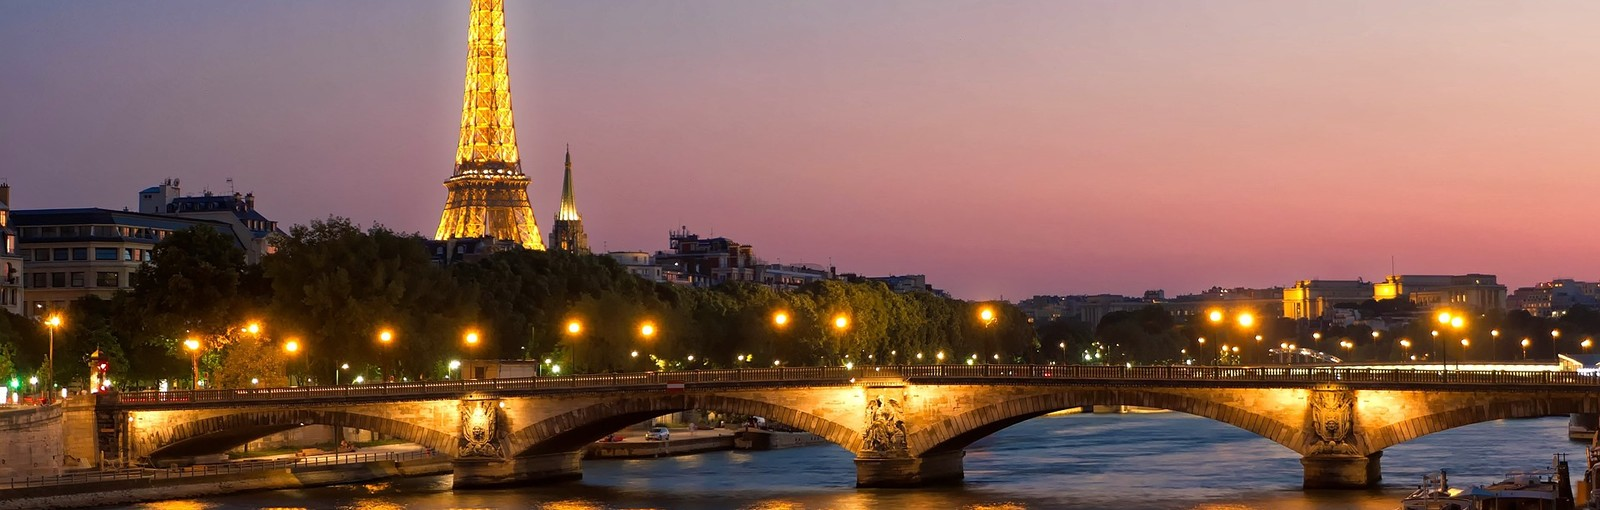 Tours Romantic Package - Paris Packages - Paris Tours